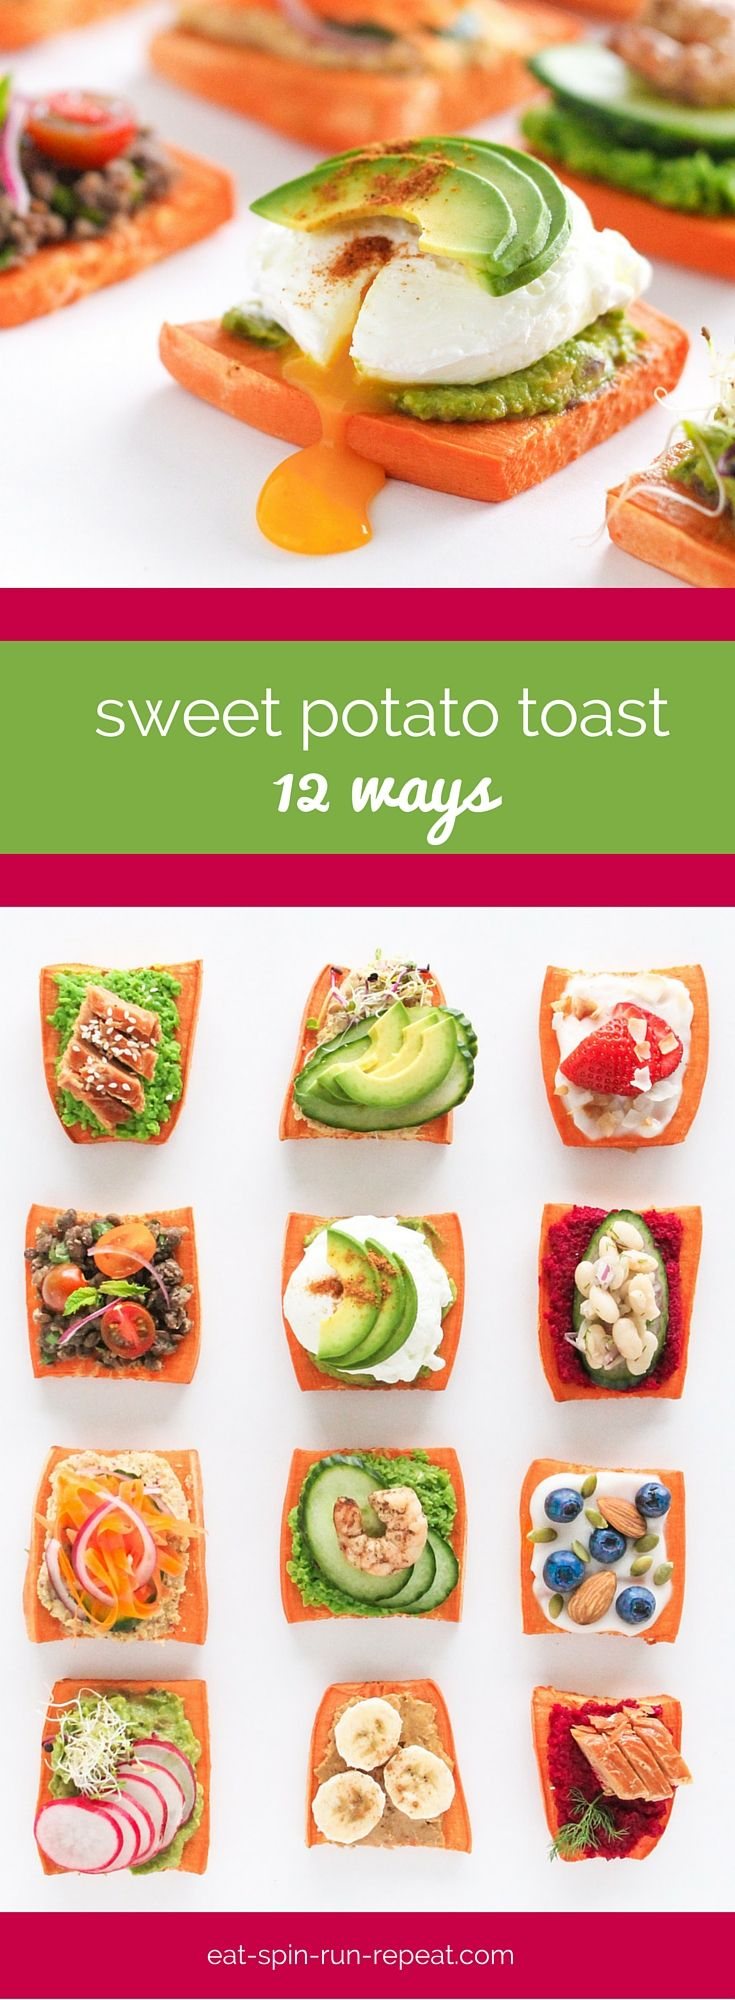 Trending Now: Sweet Potato Toast. If you thought avocado toast and sweet potato fries were great, you're going to LOVE this. :)